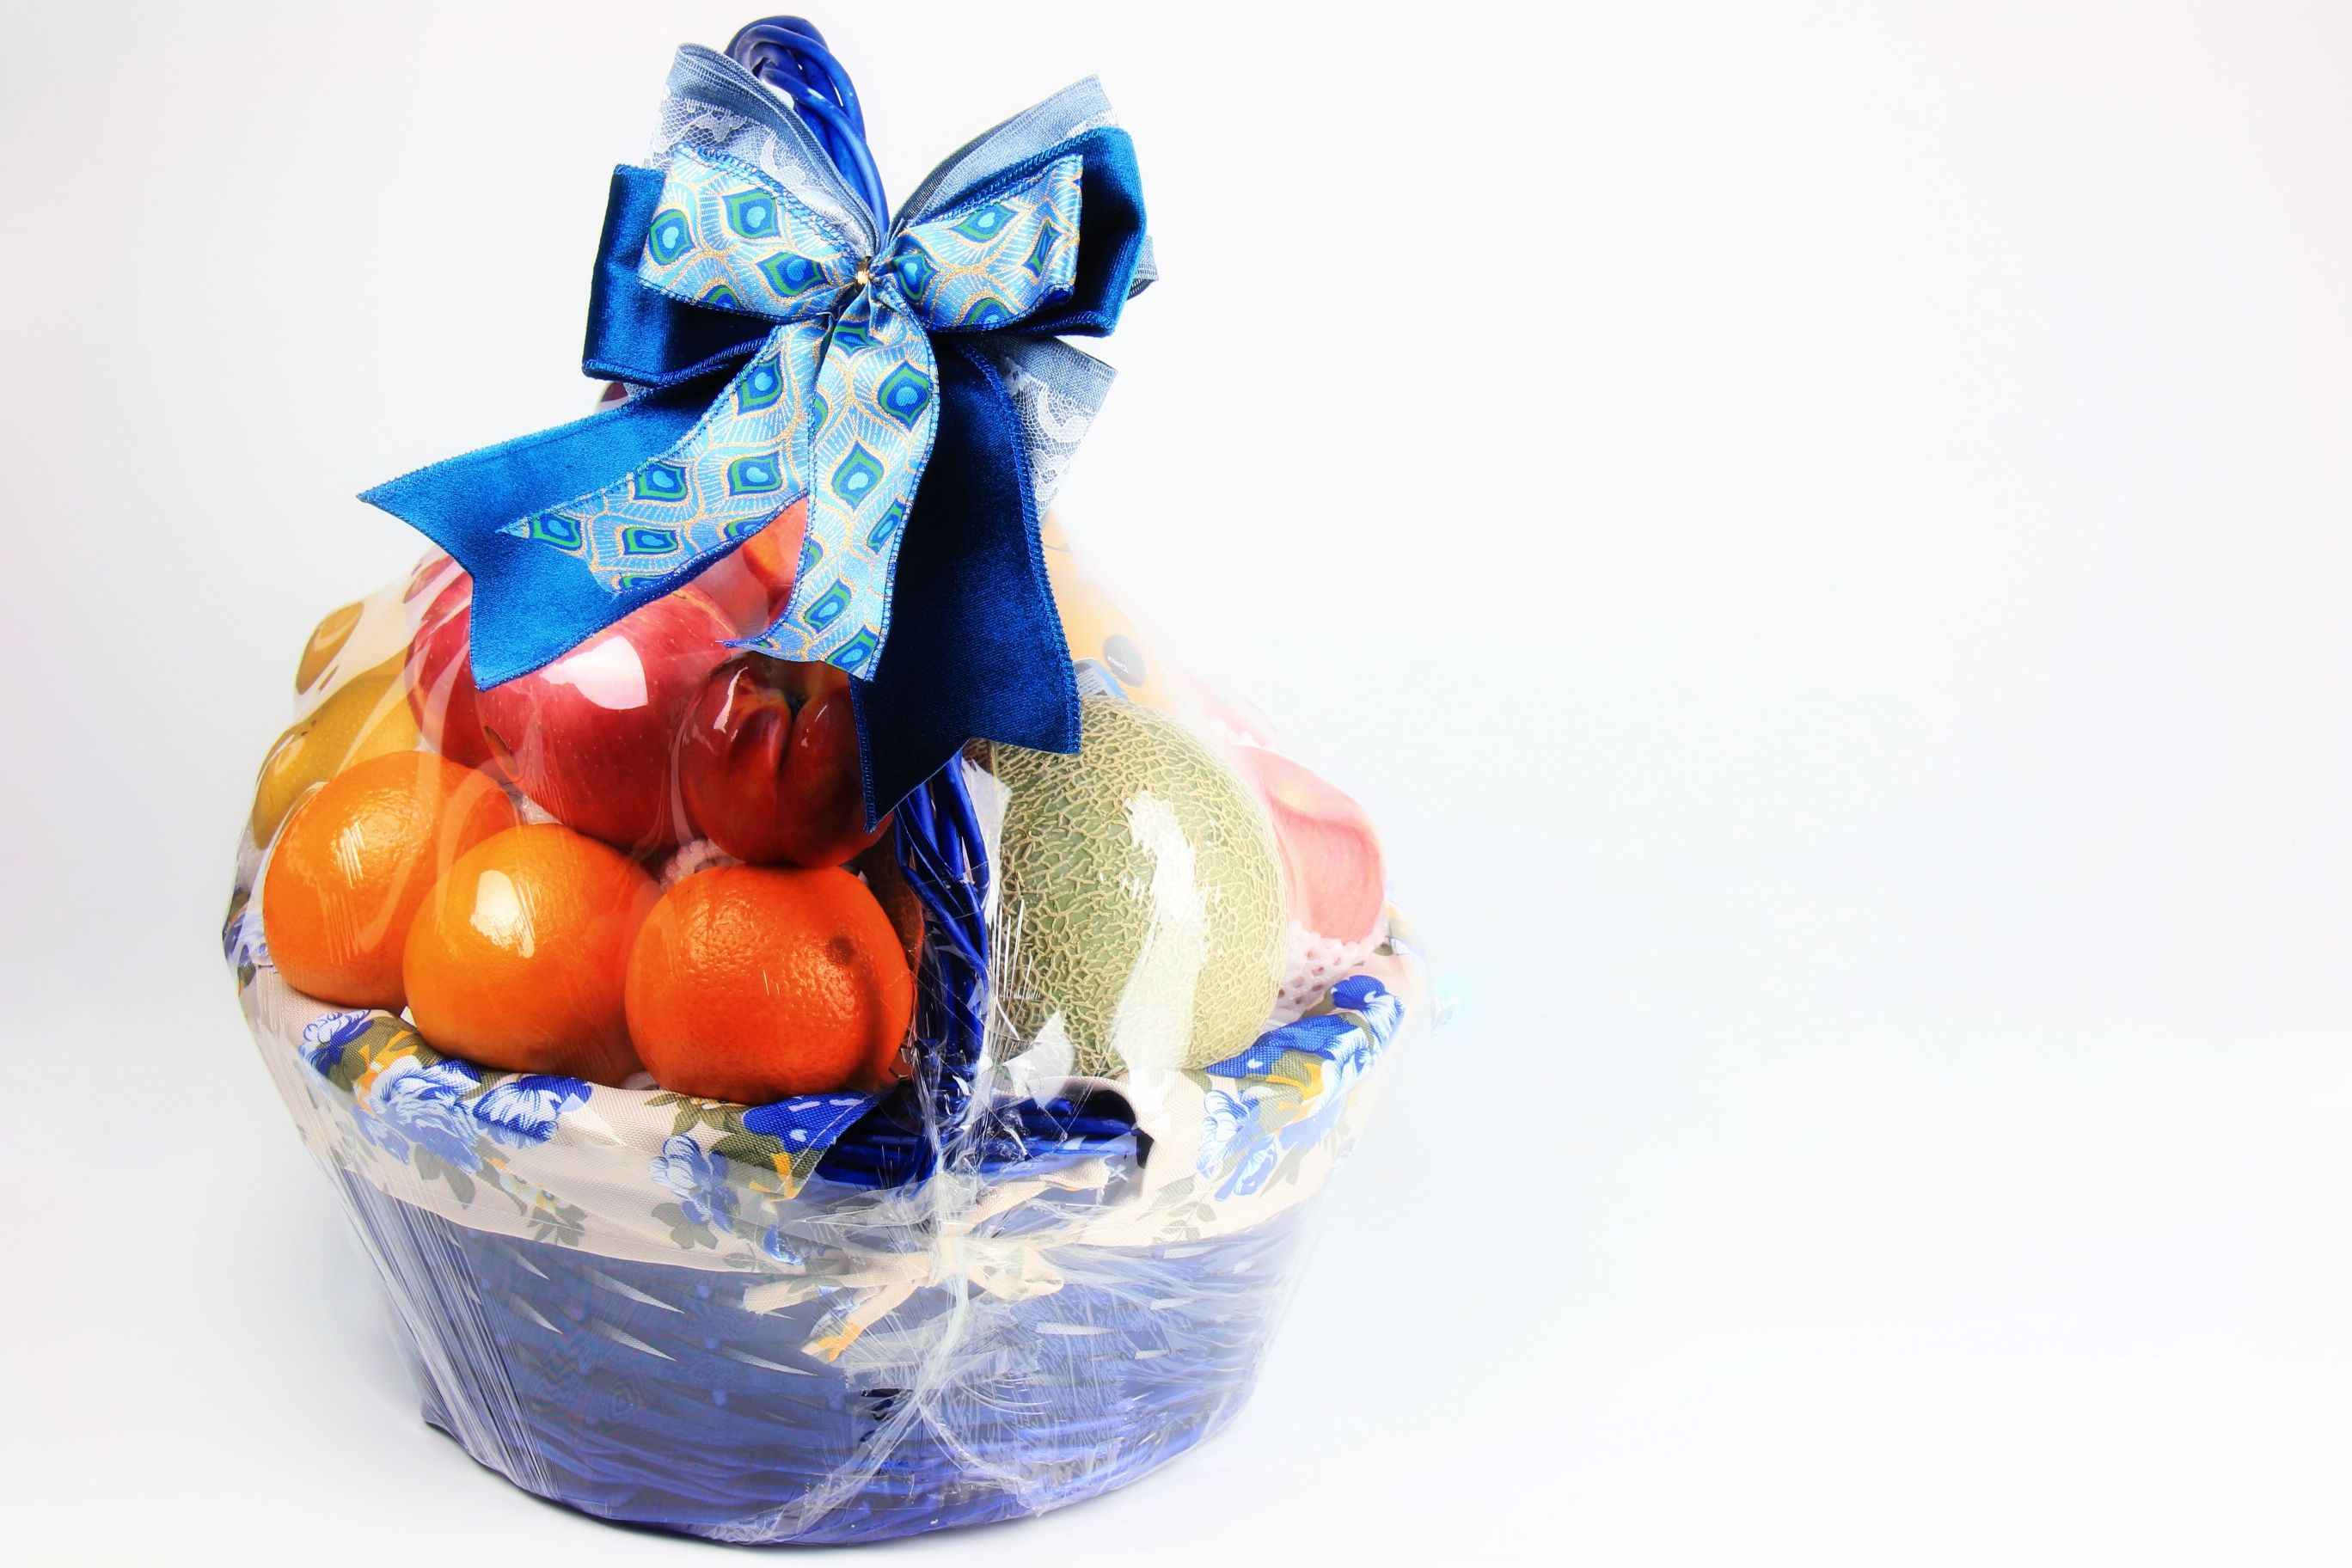 Gift Baskets & Parcels